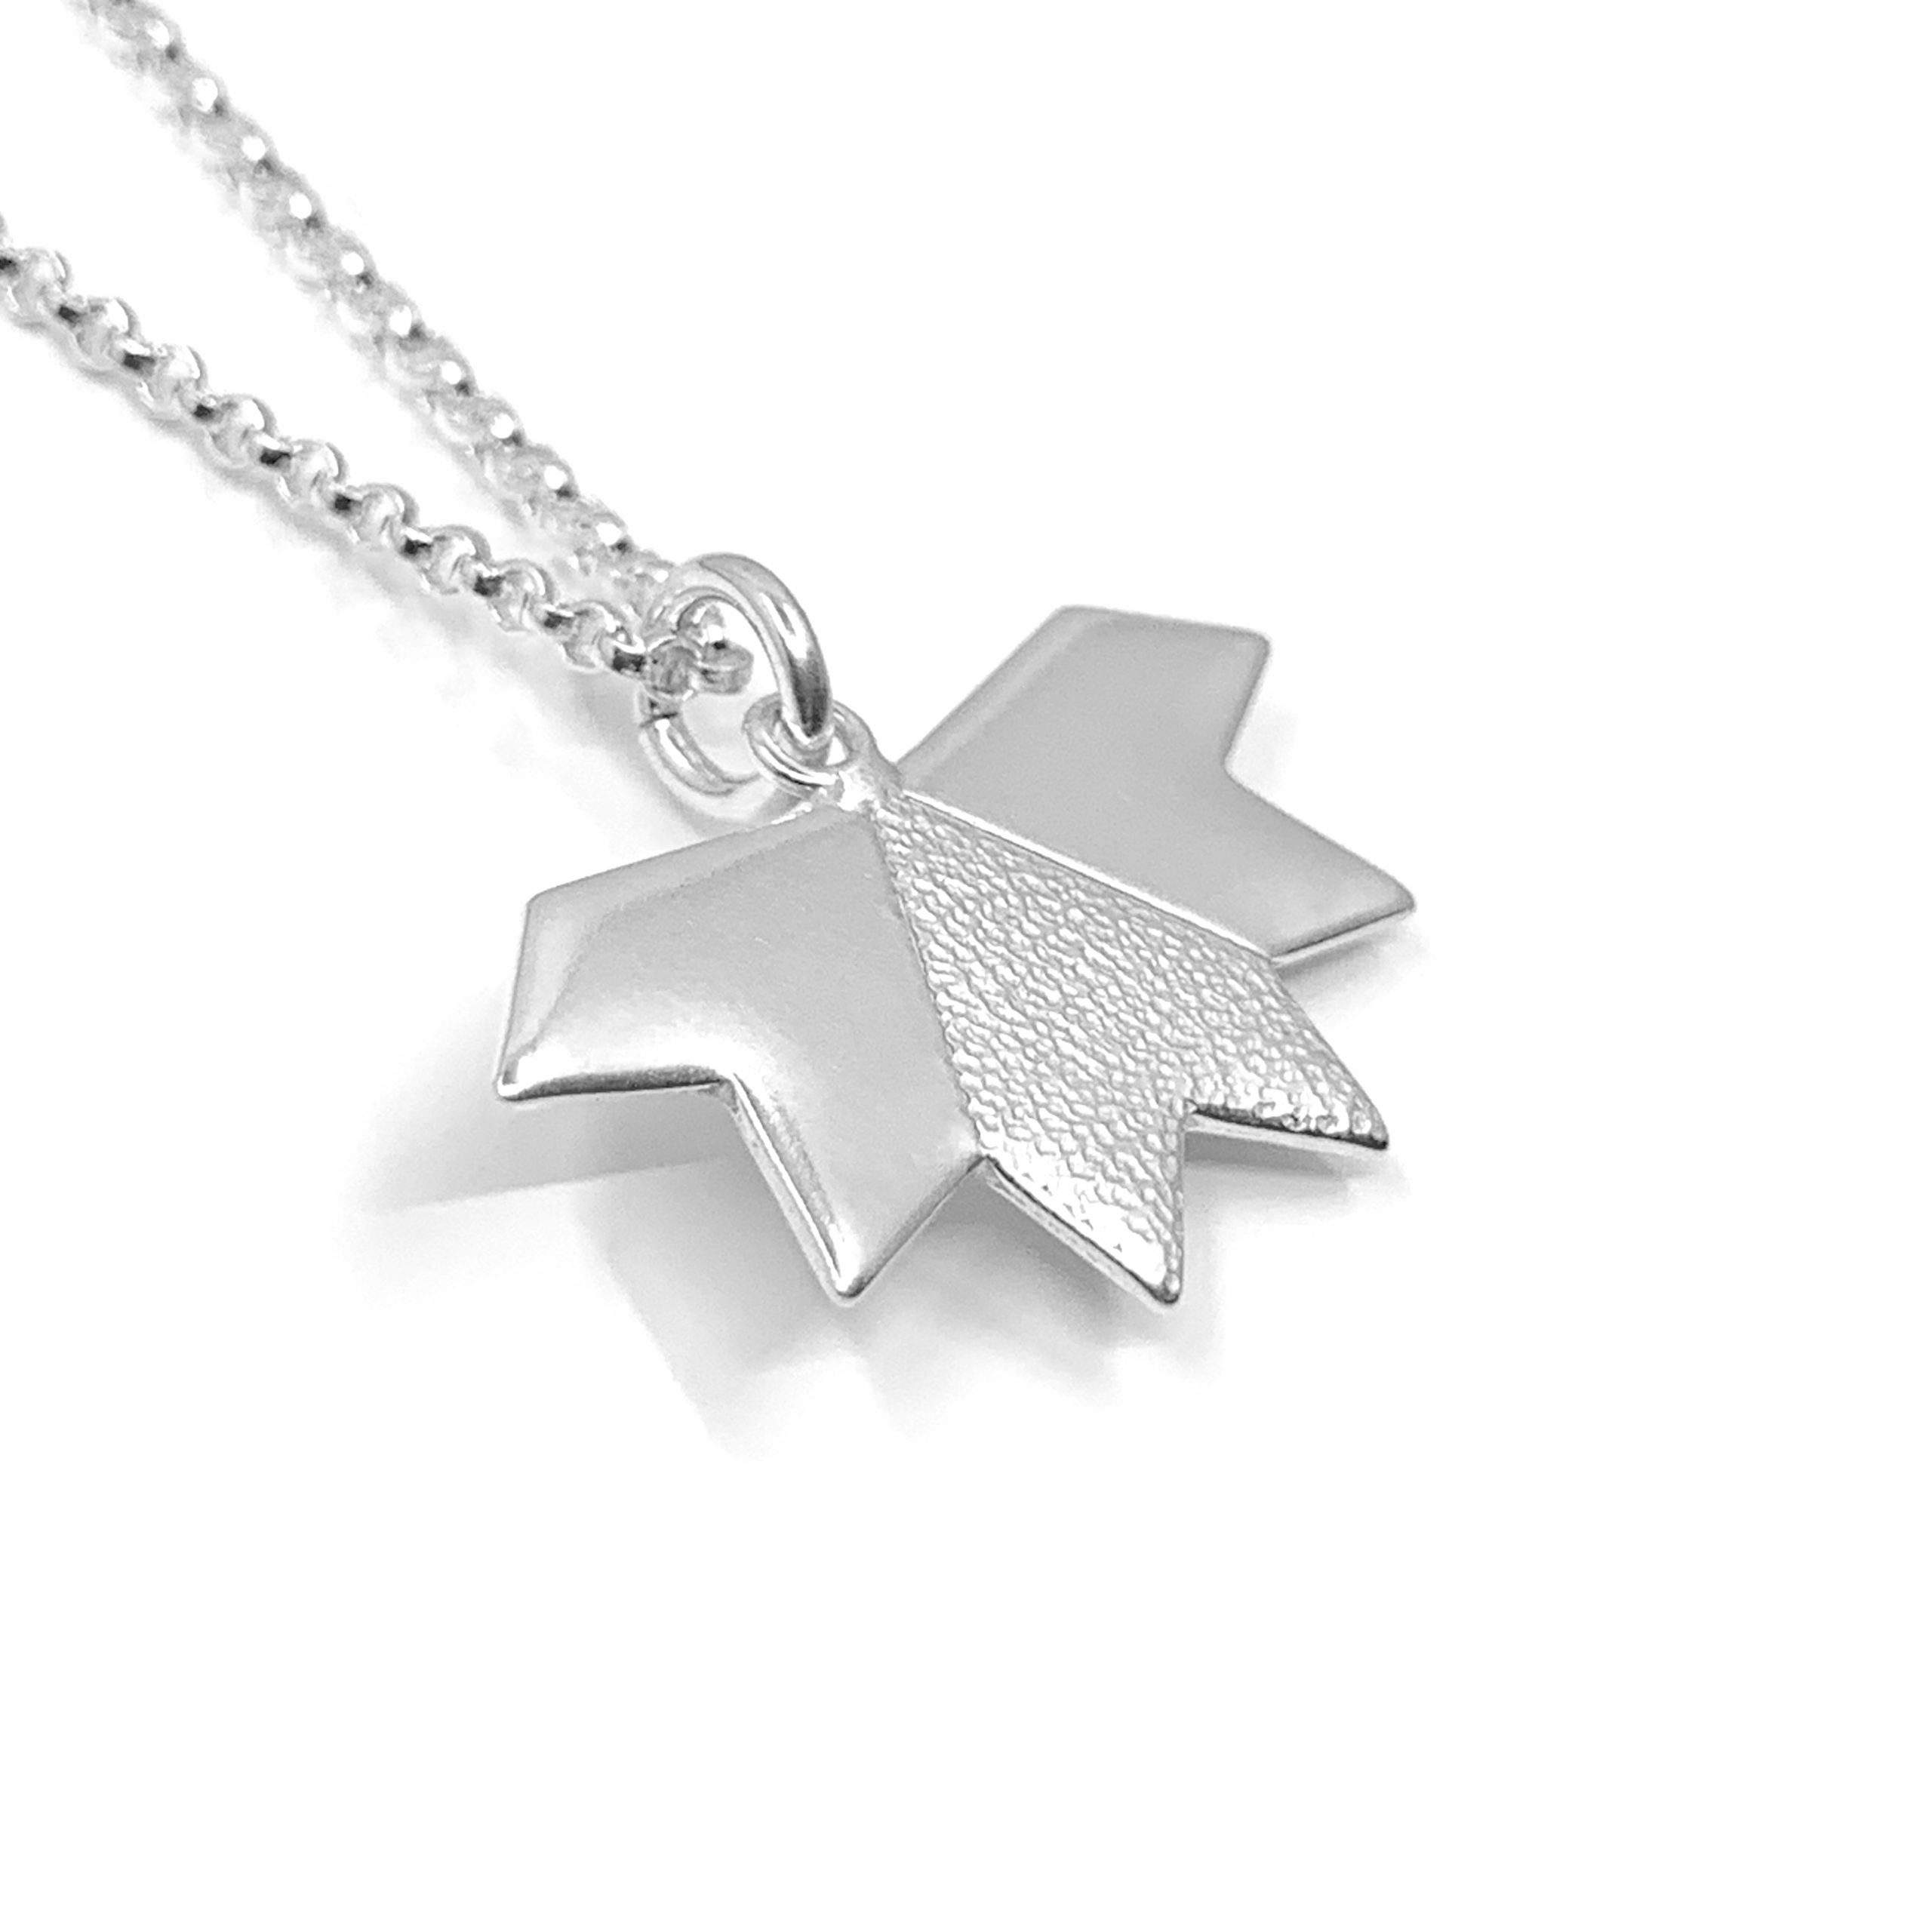 Stardust silver necklace